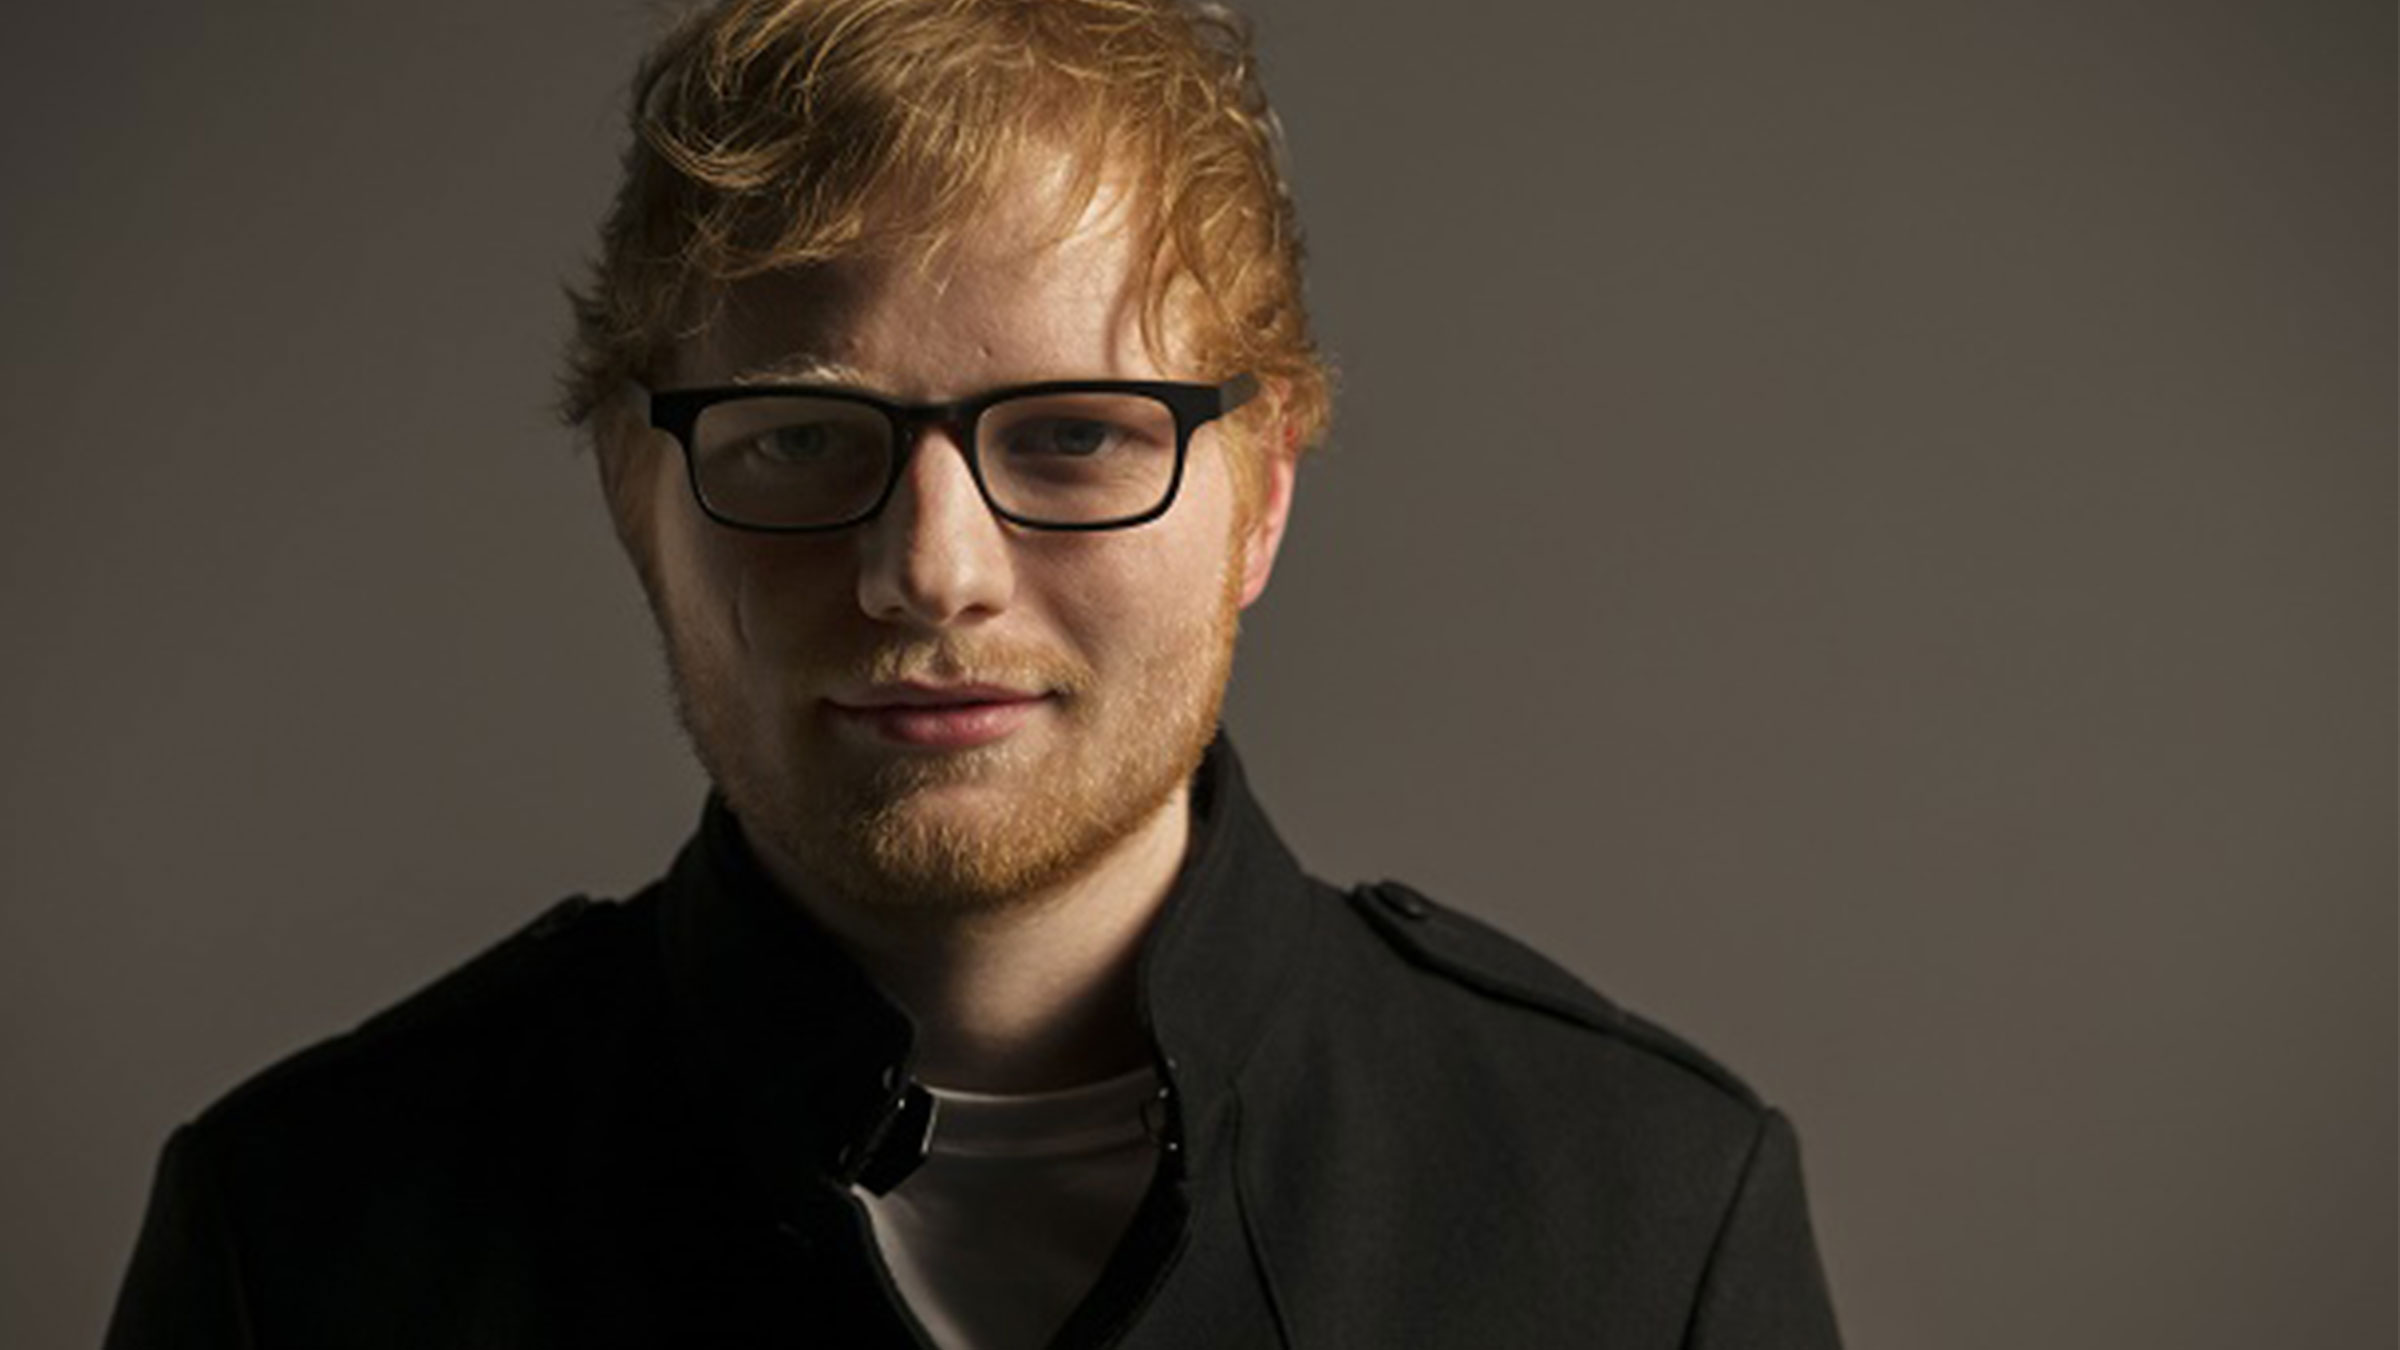 Ed sheeran boyband home1